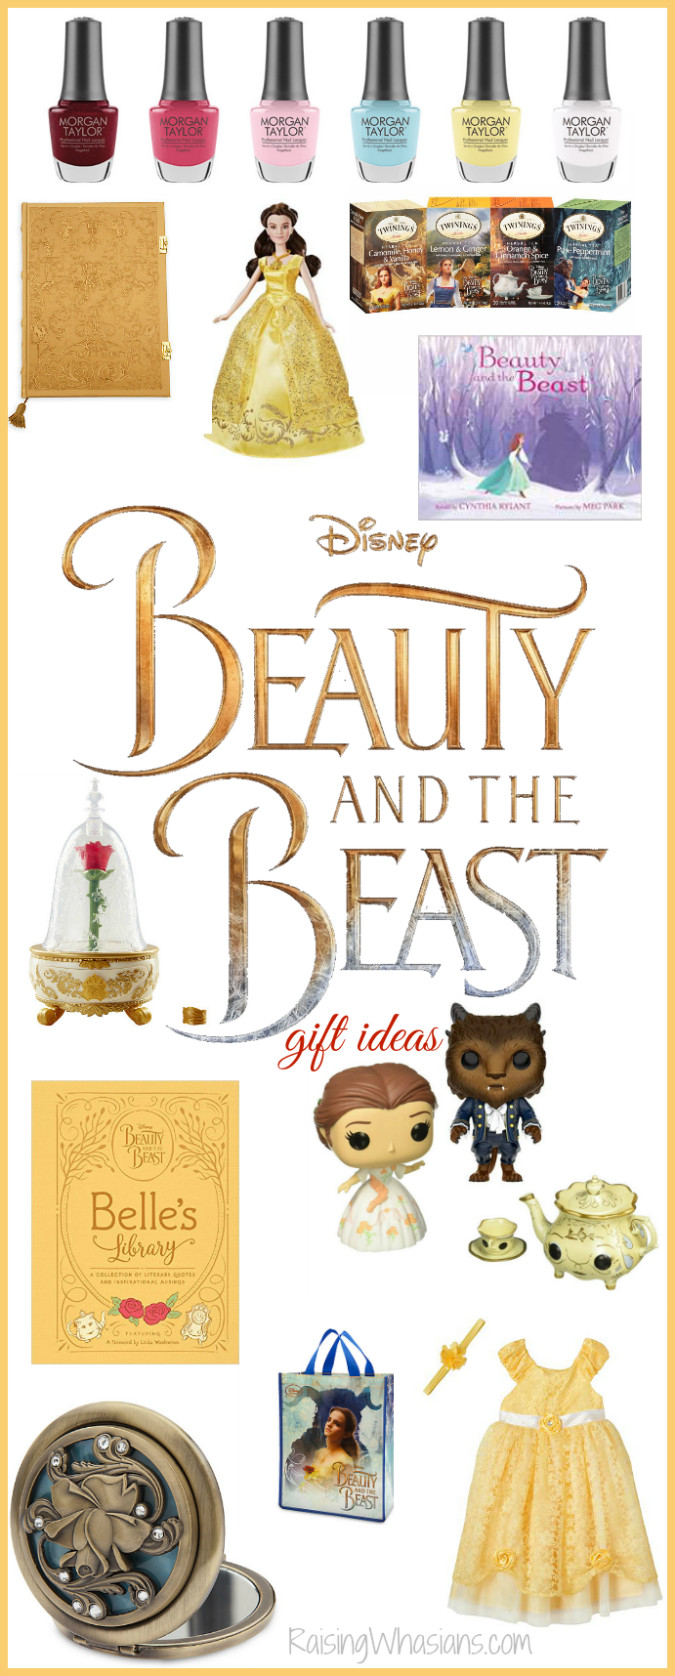 Best ideas about Beauty And The Beast Gift Ideas . Save or Pin Best Beauty and the Beast Gift Ideas for Your Little Belle Now.